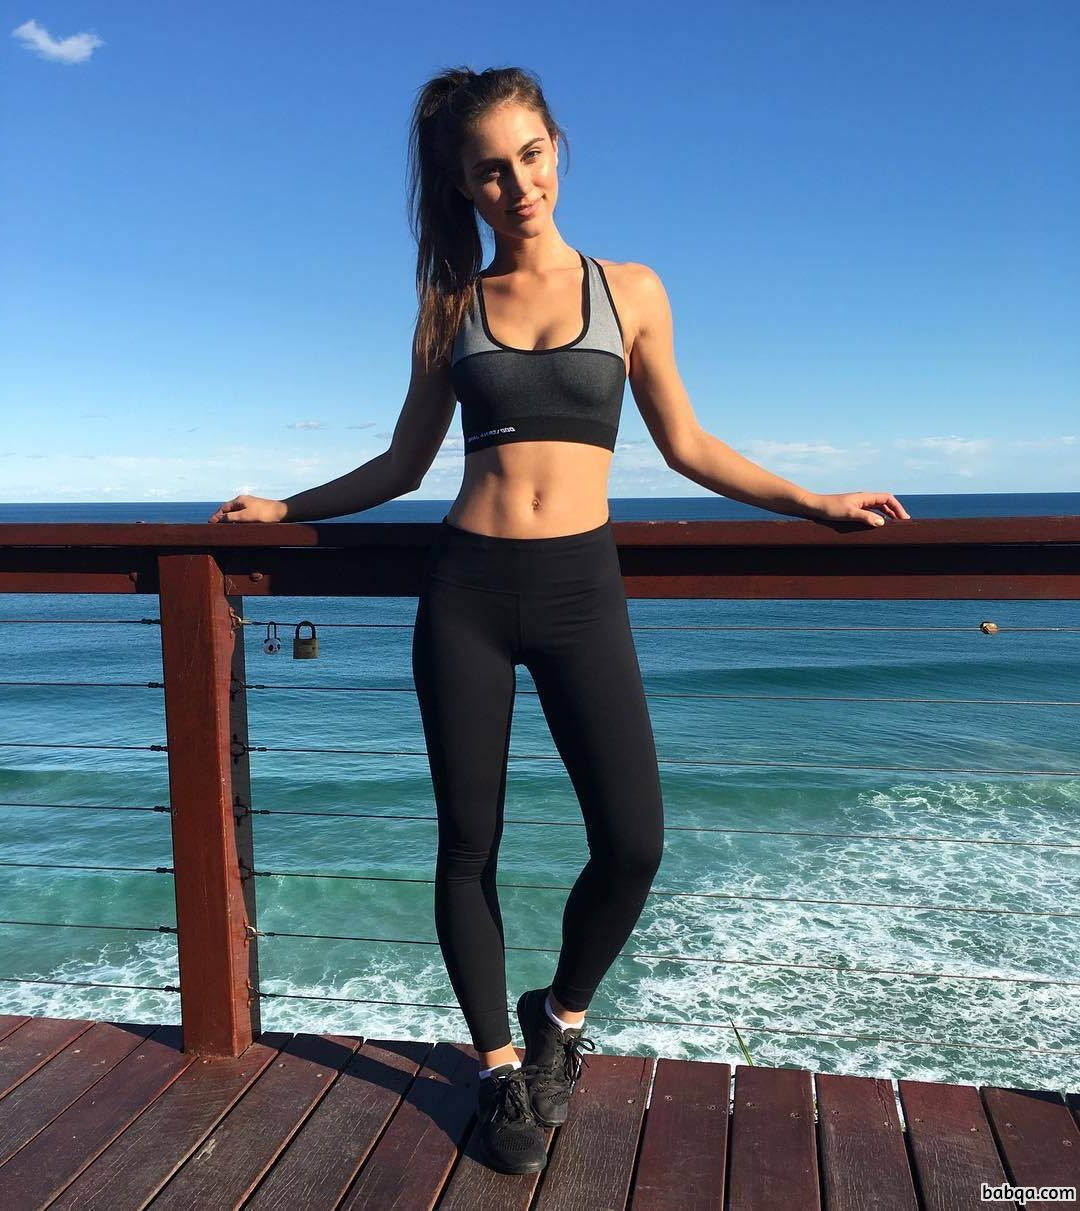 sexy bar girl repost from witnessfitness – fitness model workouts